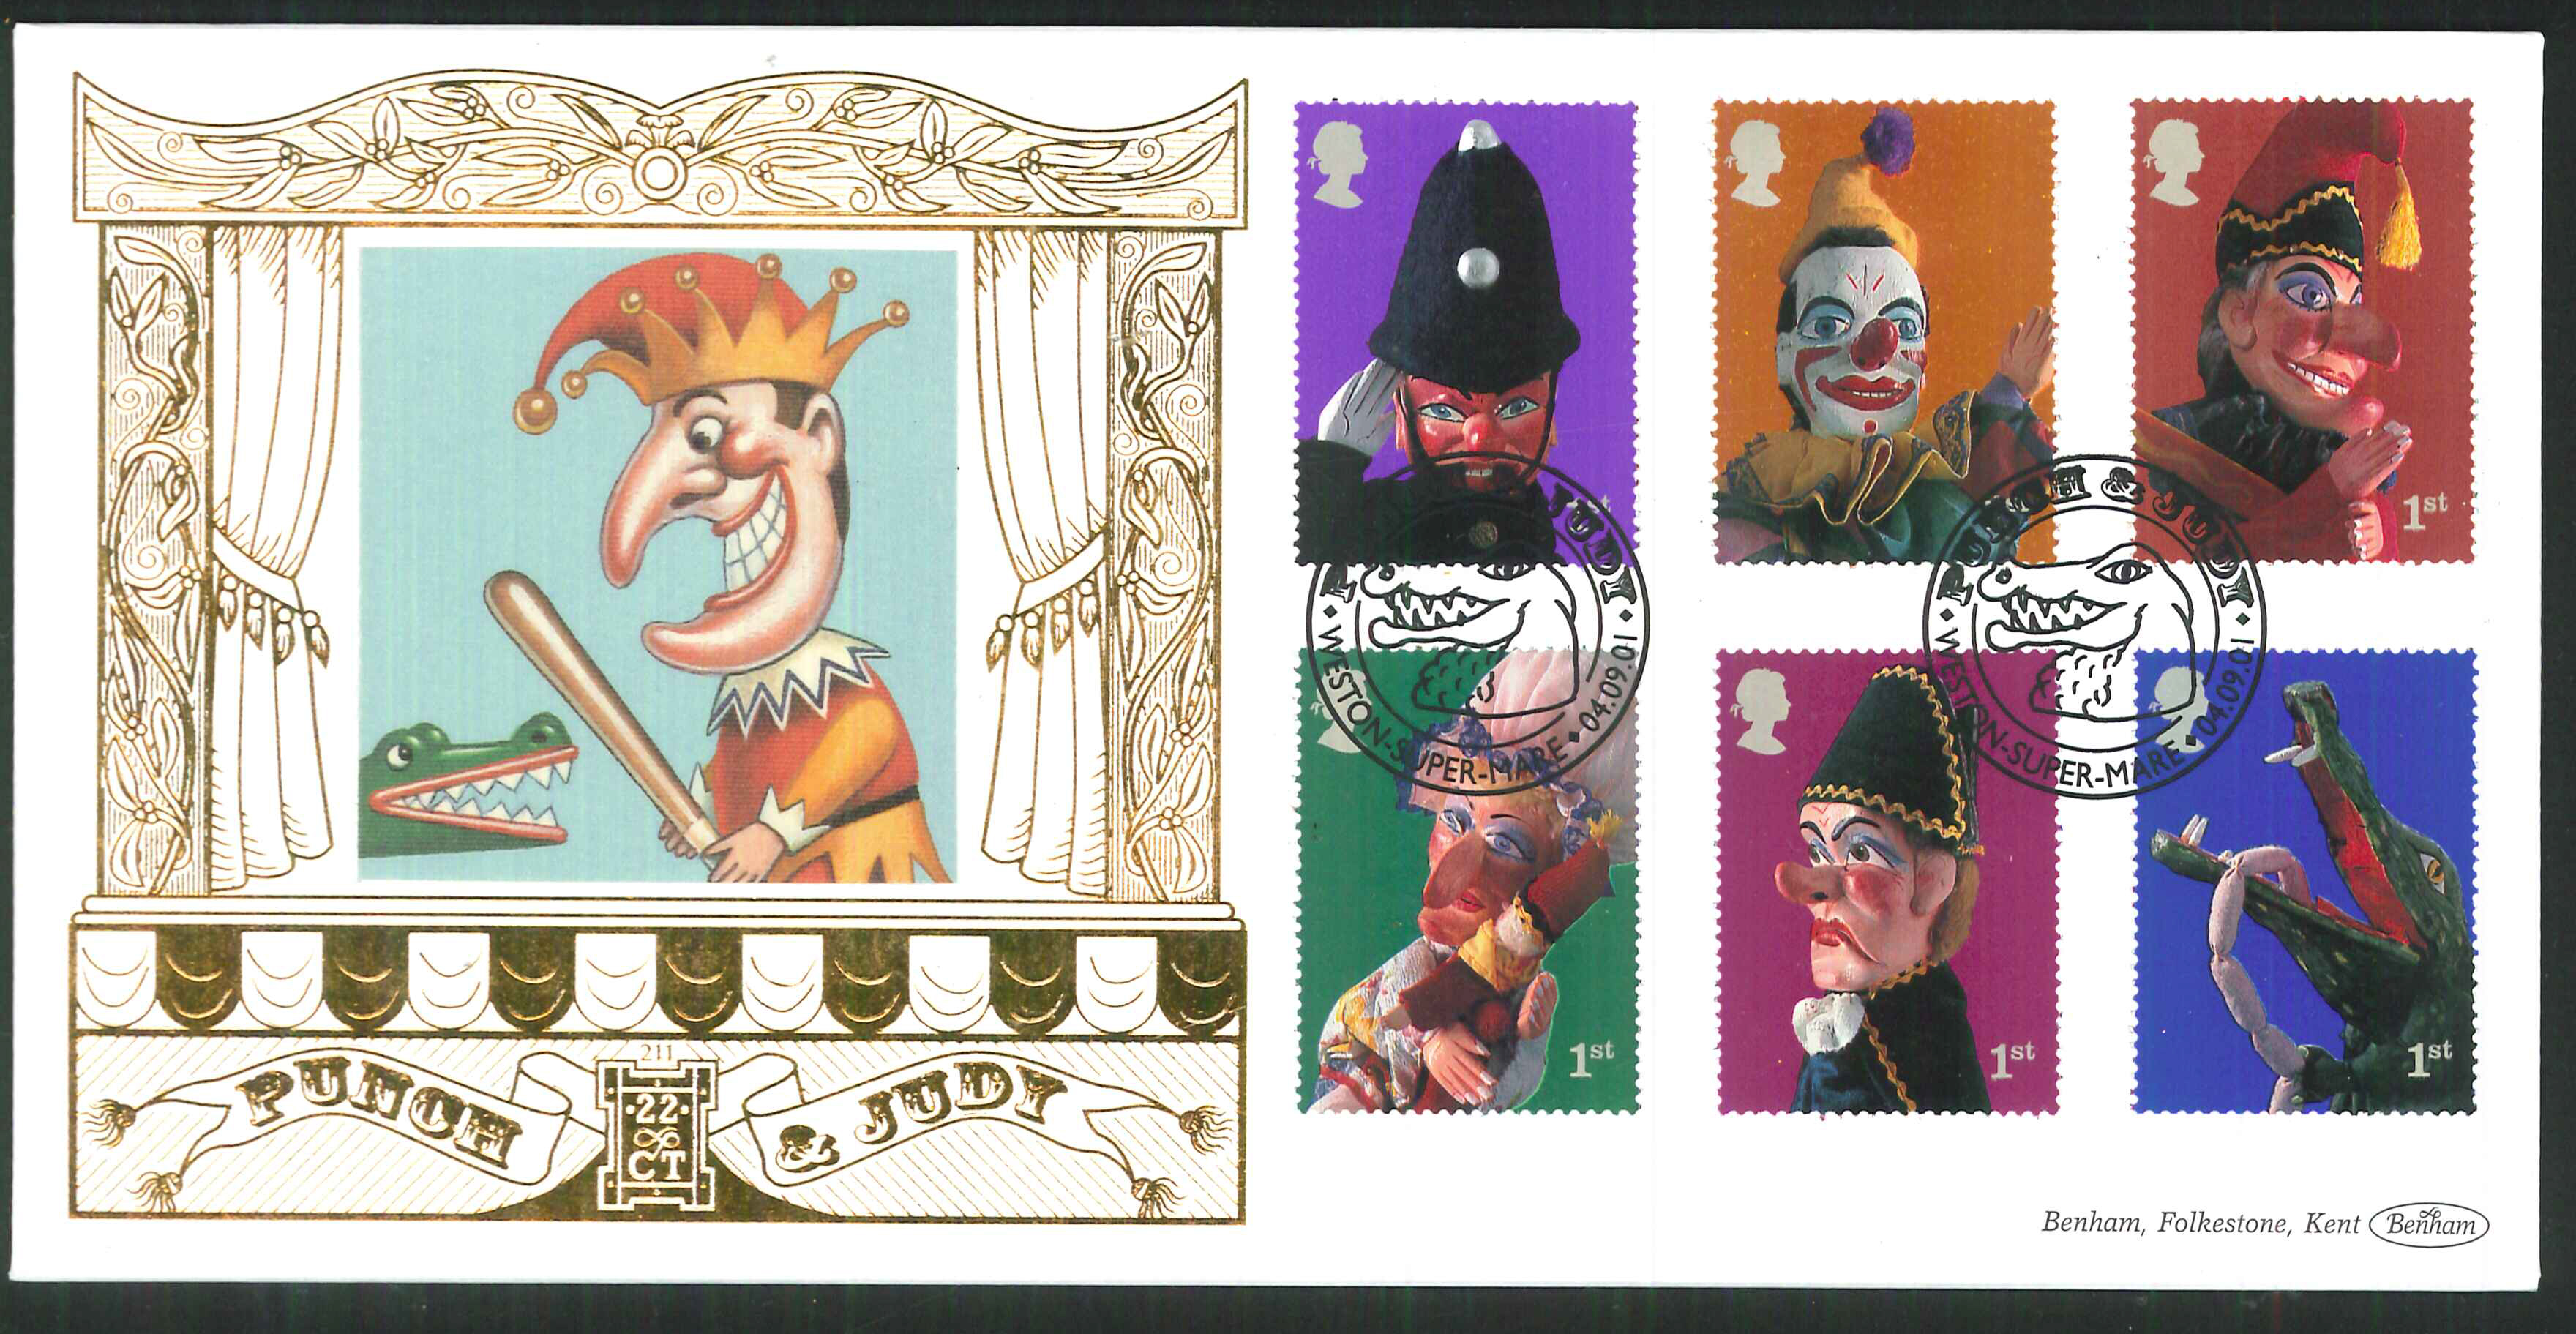 2001 - Punch & Judy FDC Benham 22ct Gold 500 - Weston super Mare Postmark